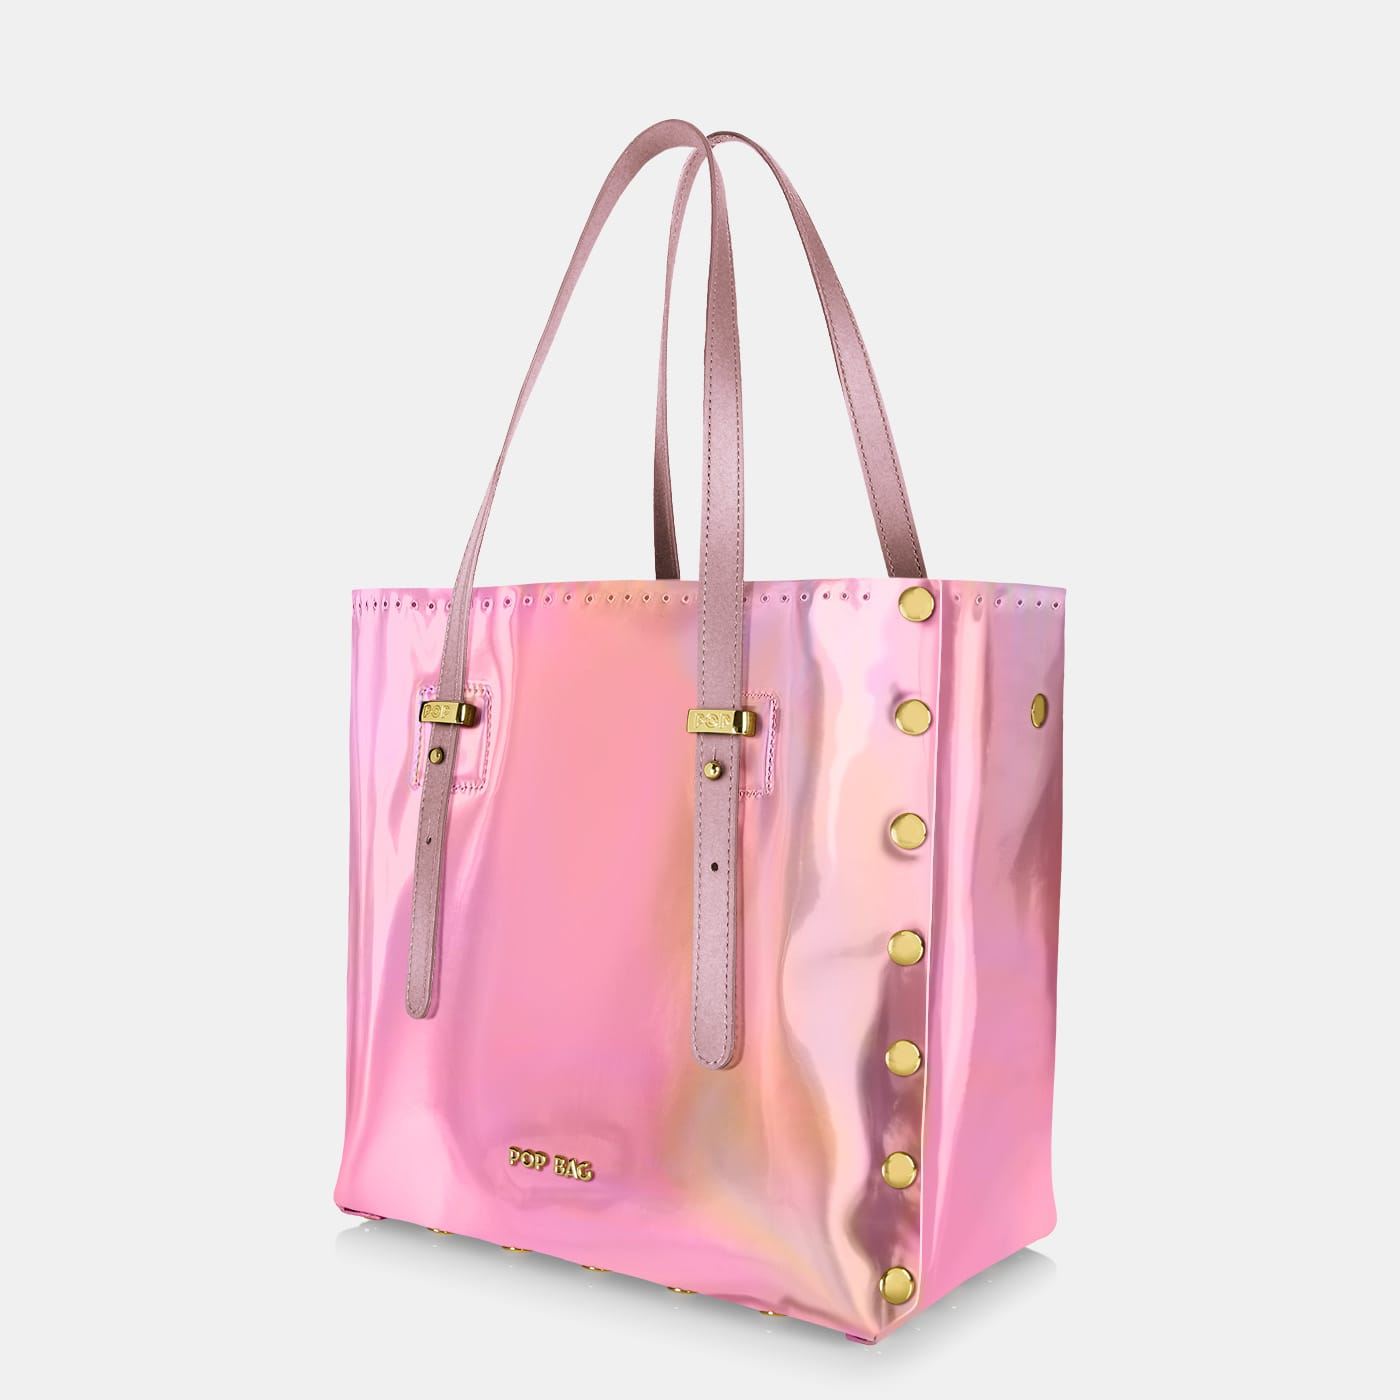 Pop Aurora Bag - Pink Iridescent - Medium - Side View